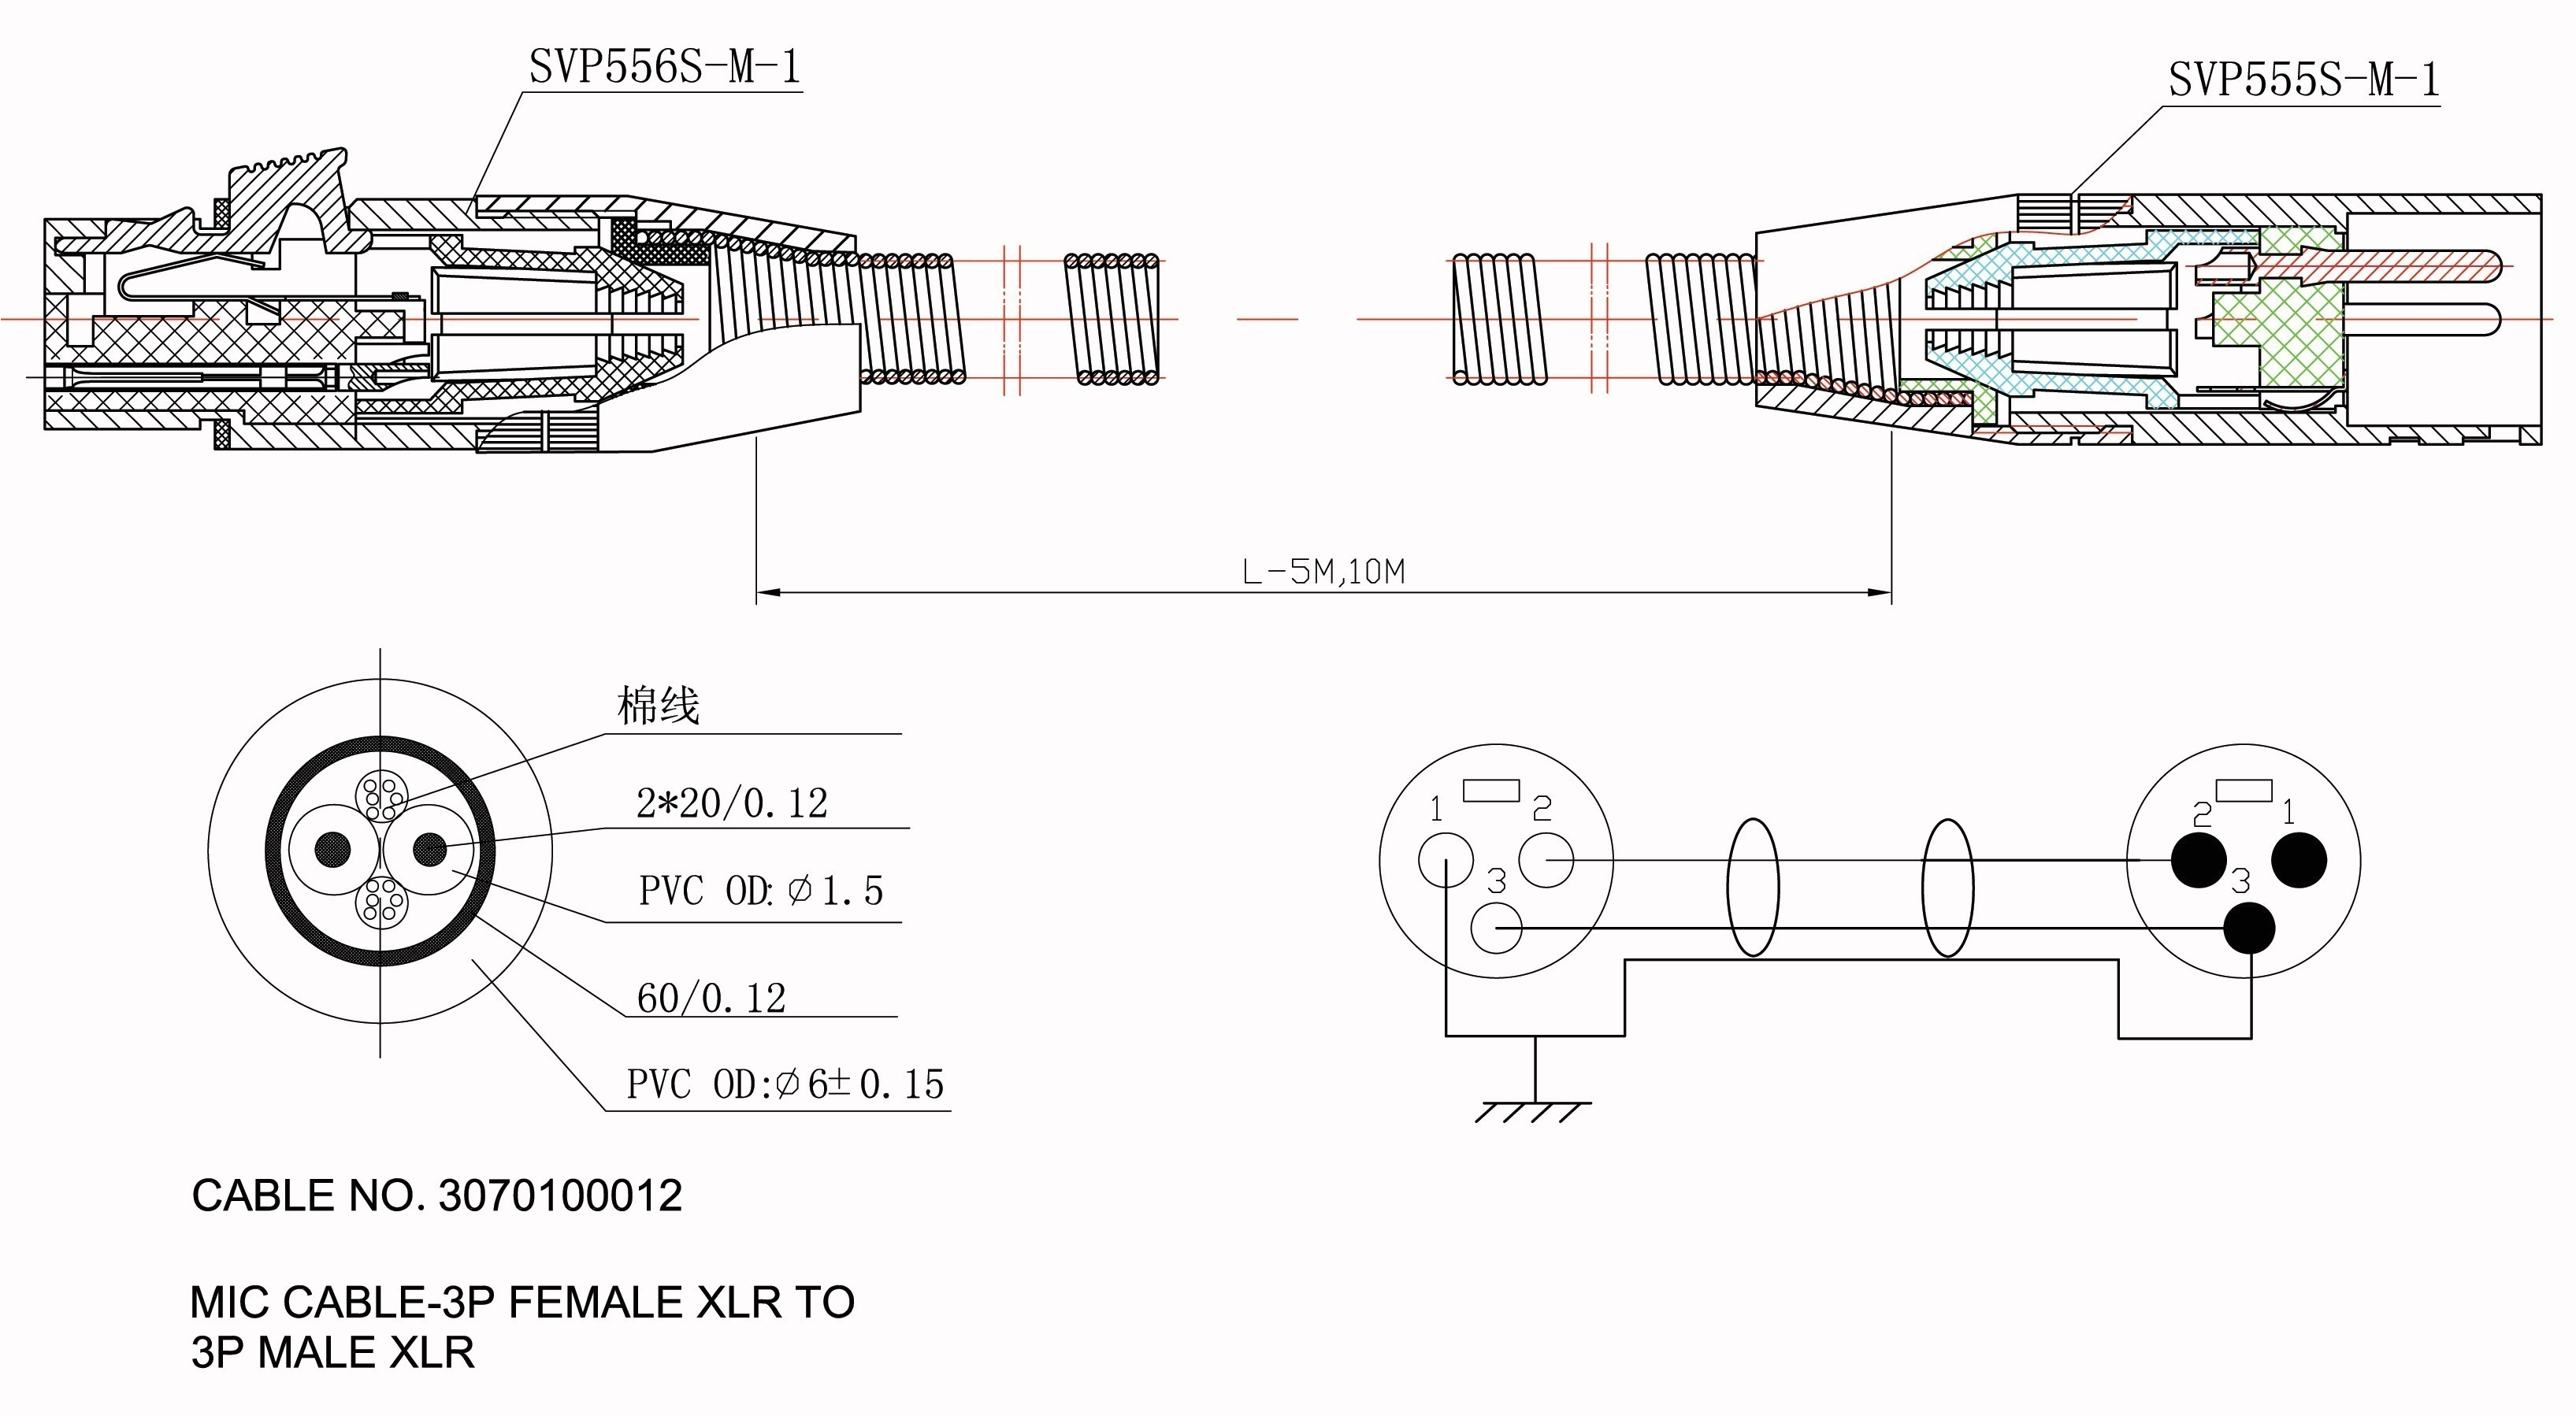 1999 ford f250 wiring diagram inspirational 7 3 international glow plug wiring diagram wire center e280a2 of 1999 ford f250 wiring diagram jpg